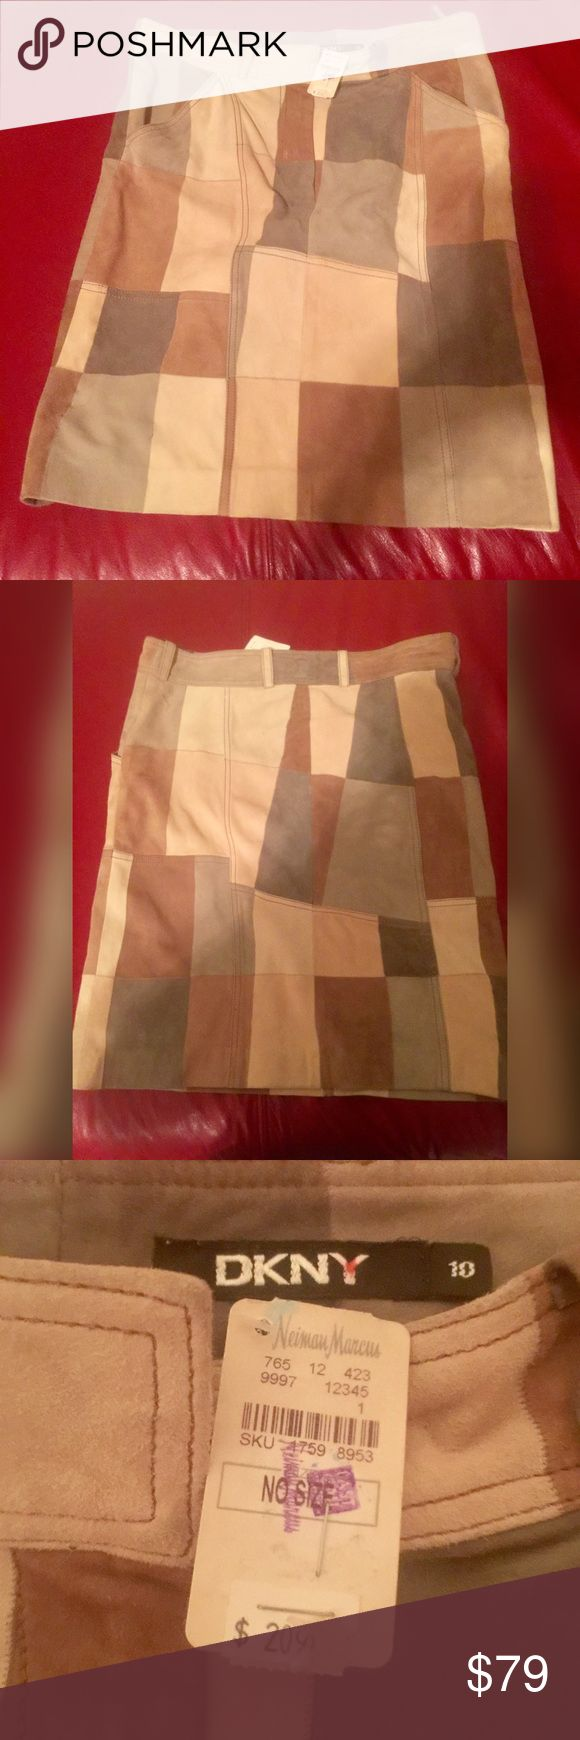 DKNY suede patchwork skirt. This darling skirt has never been worn. It would go great with some thigh high suede boots and a sweater. It is multicolored so you have options. It is a size 10 and is NWT. I bought it years ago from Neiman Marcus Last Call. DKNY Skirts